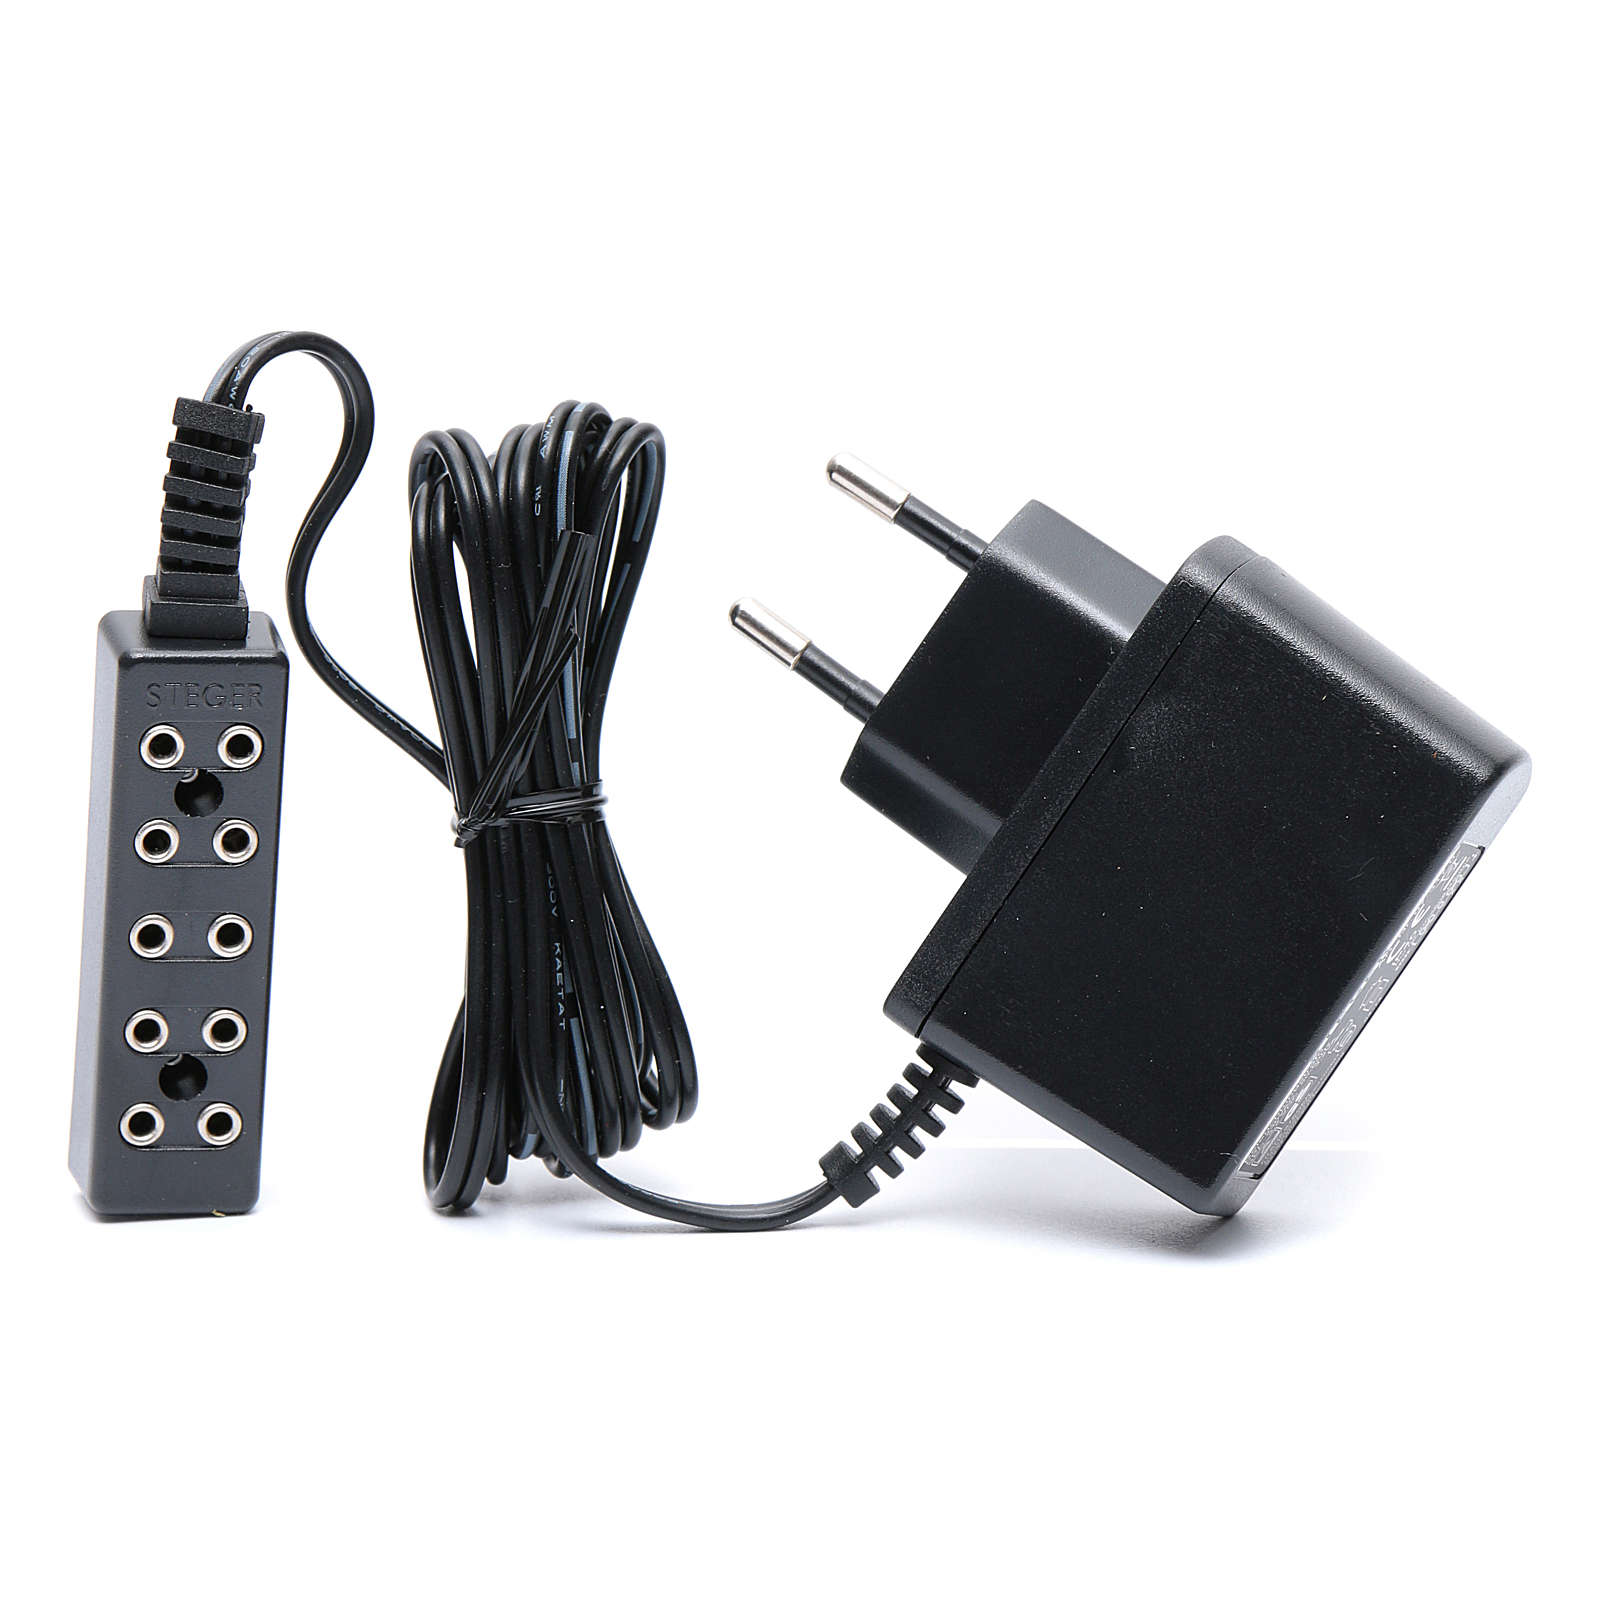 Light transformer for nativity scene 230V - 3.2V 4